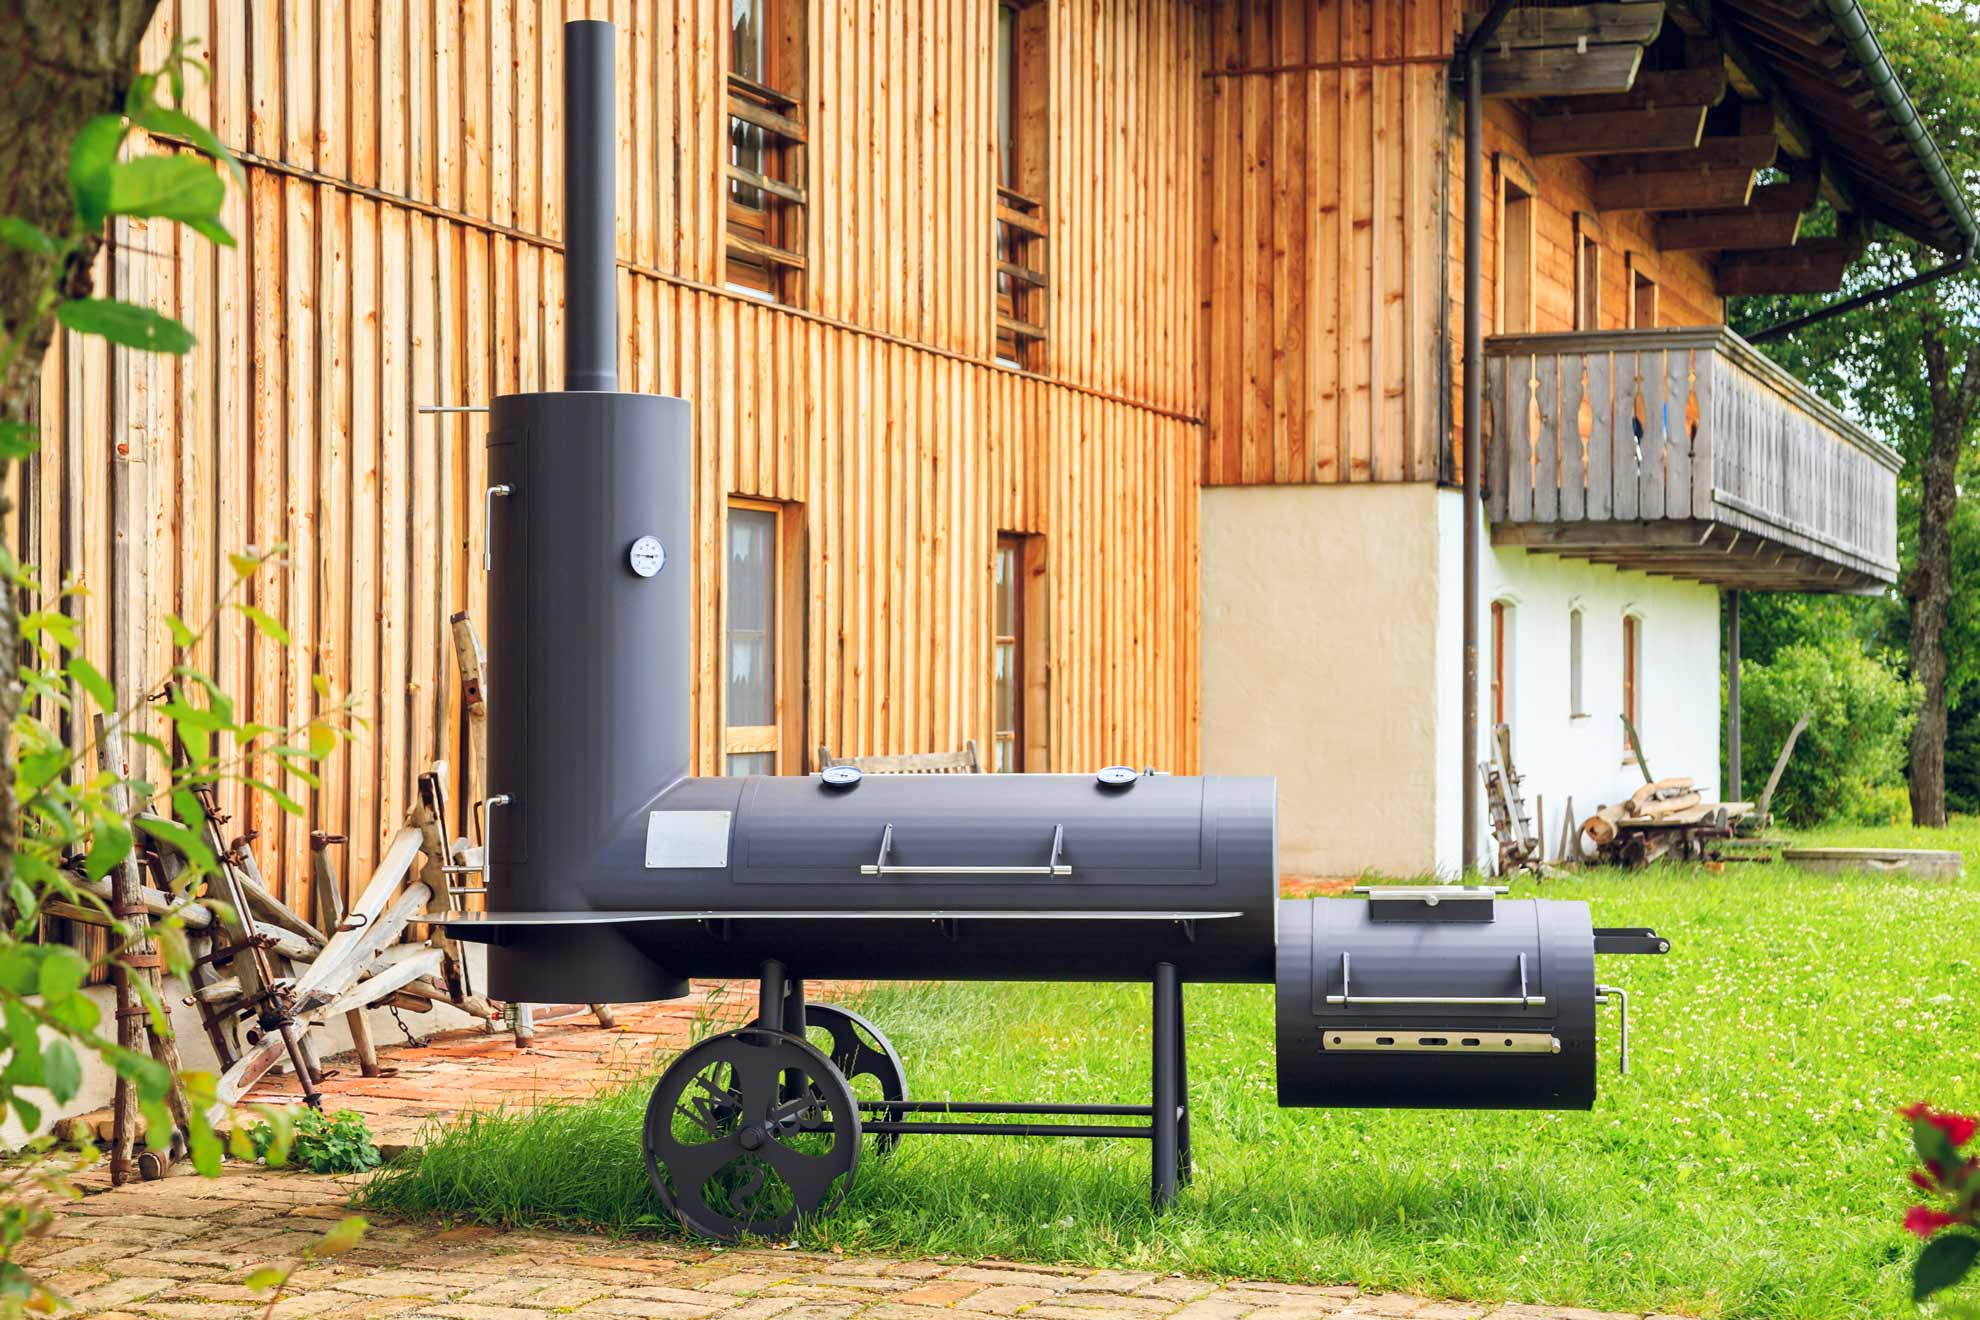 smoker grillen char broil smoker charcoal grill offset portable bbq outdoor large home barbecue. Black Bedroom Furniture Sets. Home Design Ideas